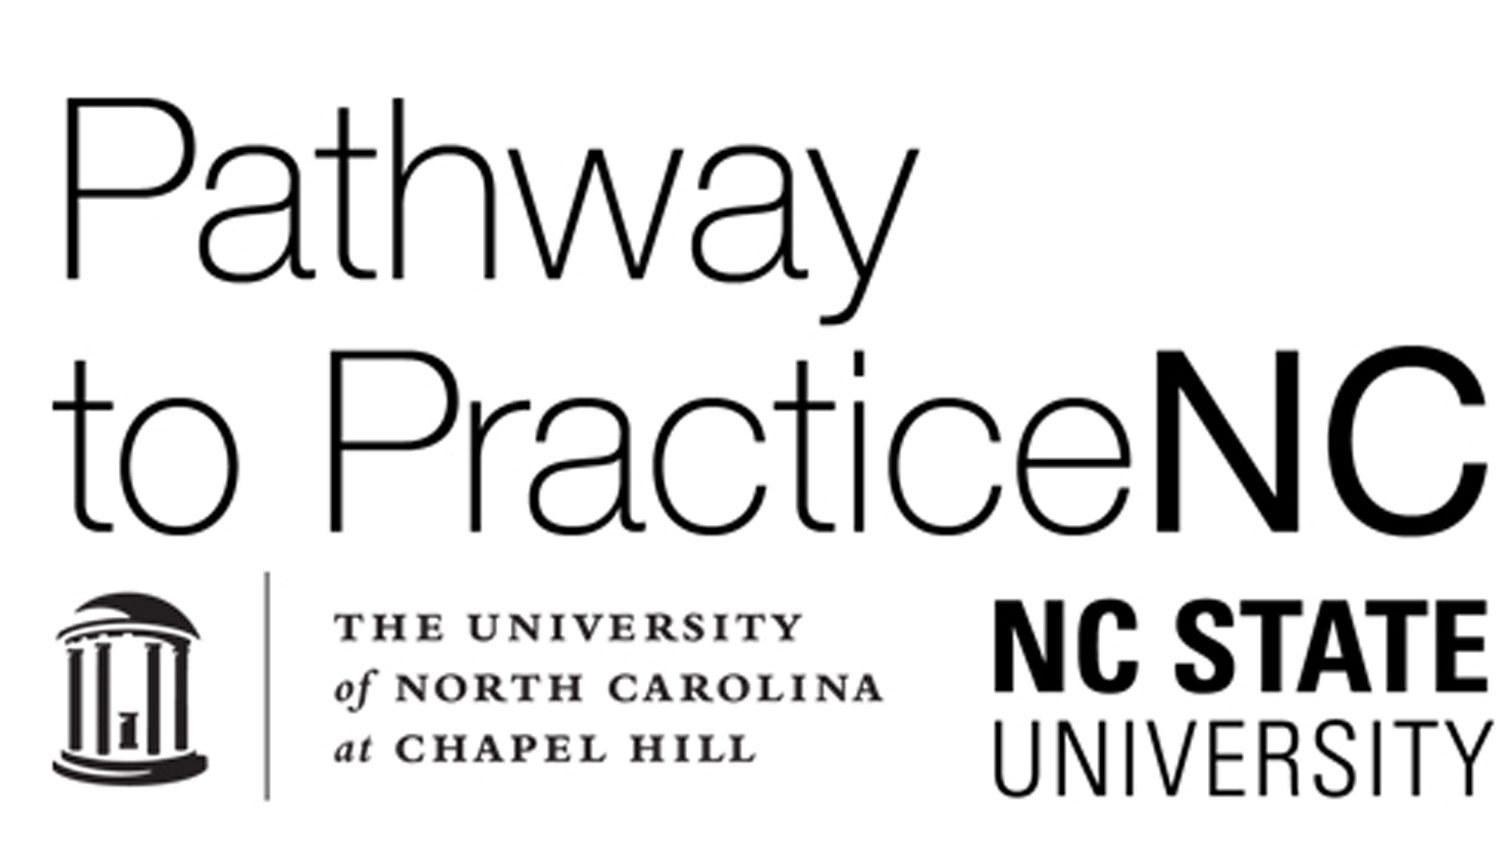 Pathway to Practice NC